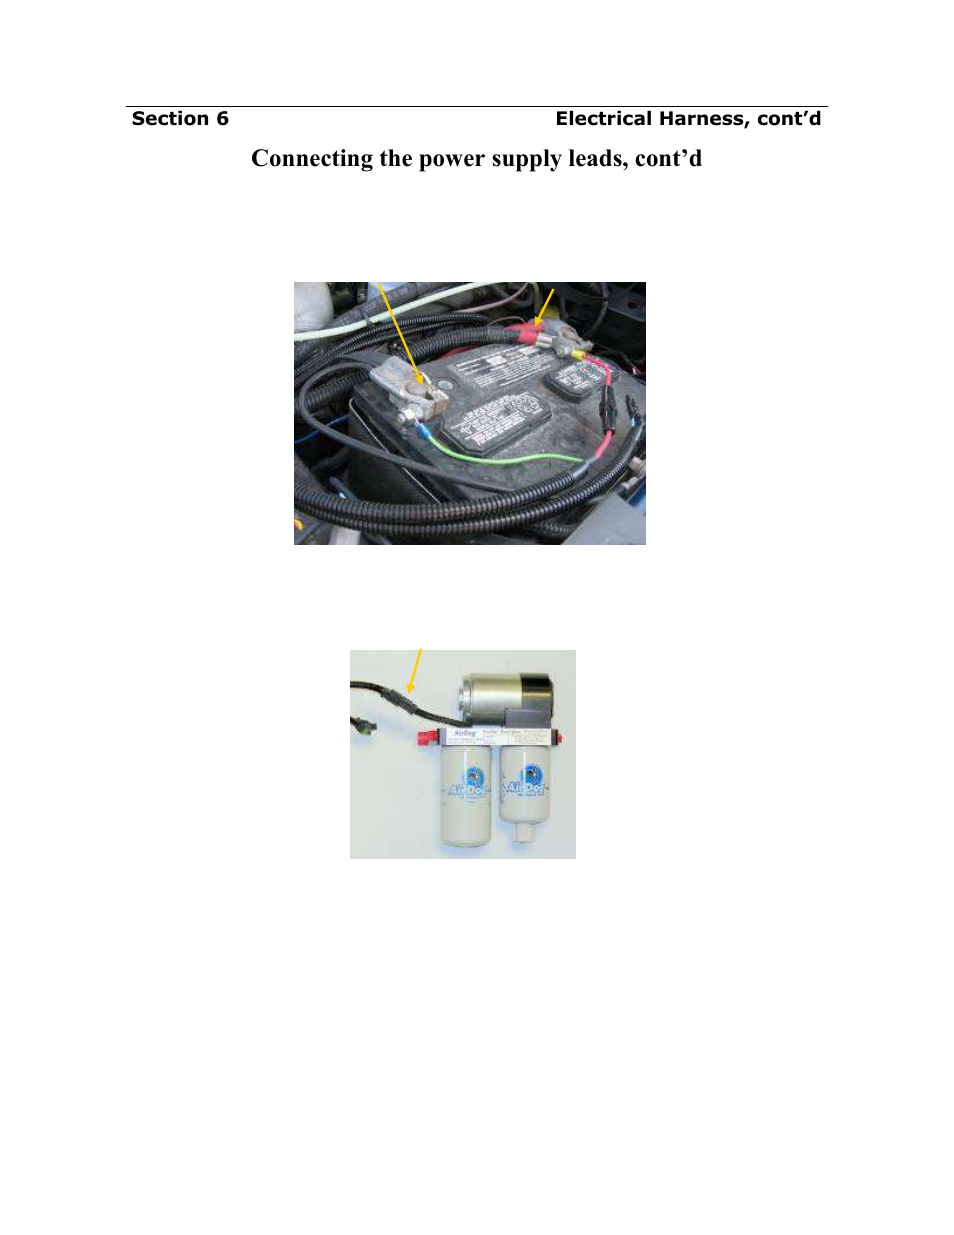 pureflow airdog df 165 4g gm duramax 2015 page16 airdog wiring harness wiring diagrams airdog 2 wiring harness at readyjetset.co